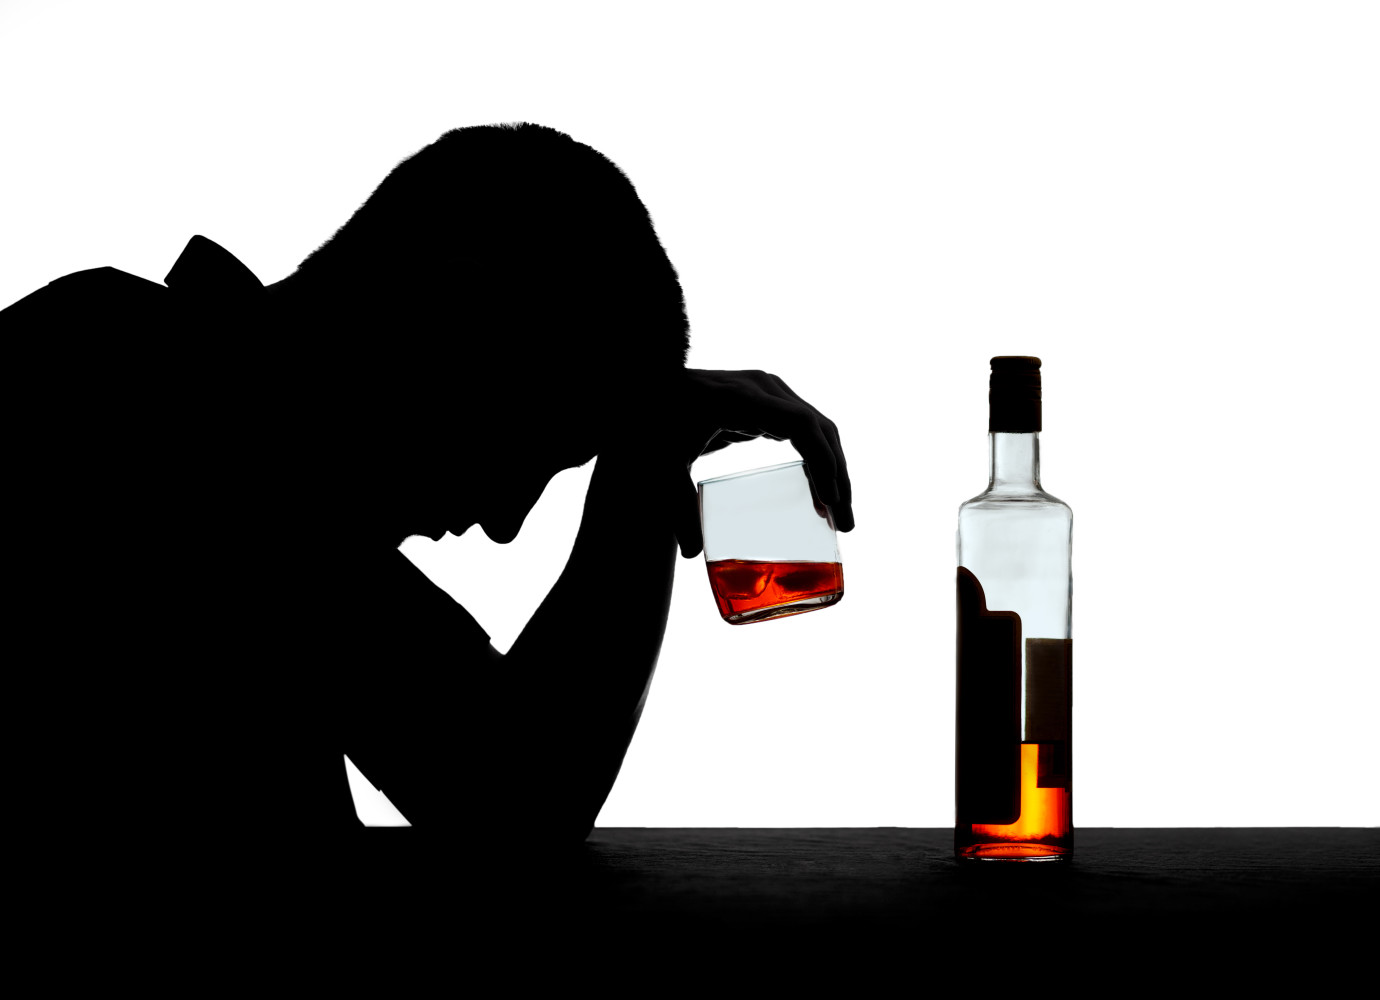 alcoholism influenced by family behavior The national institute on alcohol abuse and alcoholism (niaaa) defines alcohol use disorder (aud) - formerly alcoholism or alcohol addiction - as a form of problem drinking that has become severe, with compulsive behaviors and physical dependence associated with the condition.